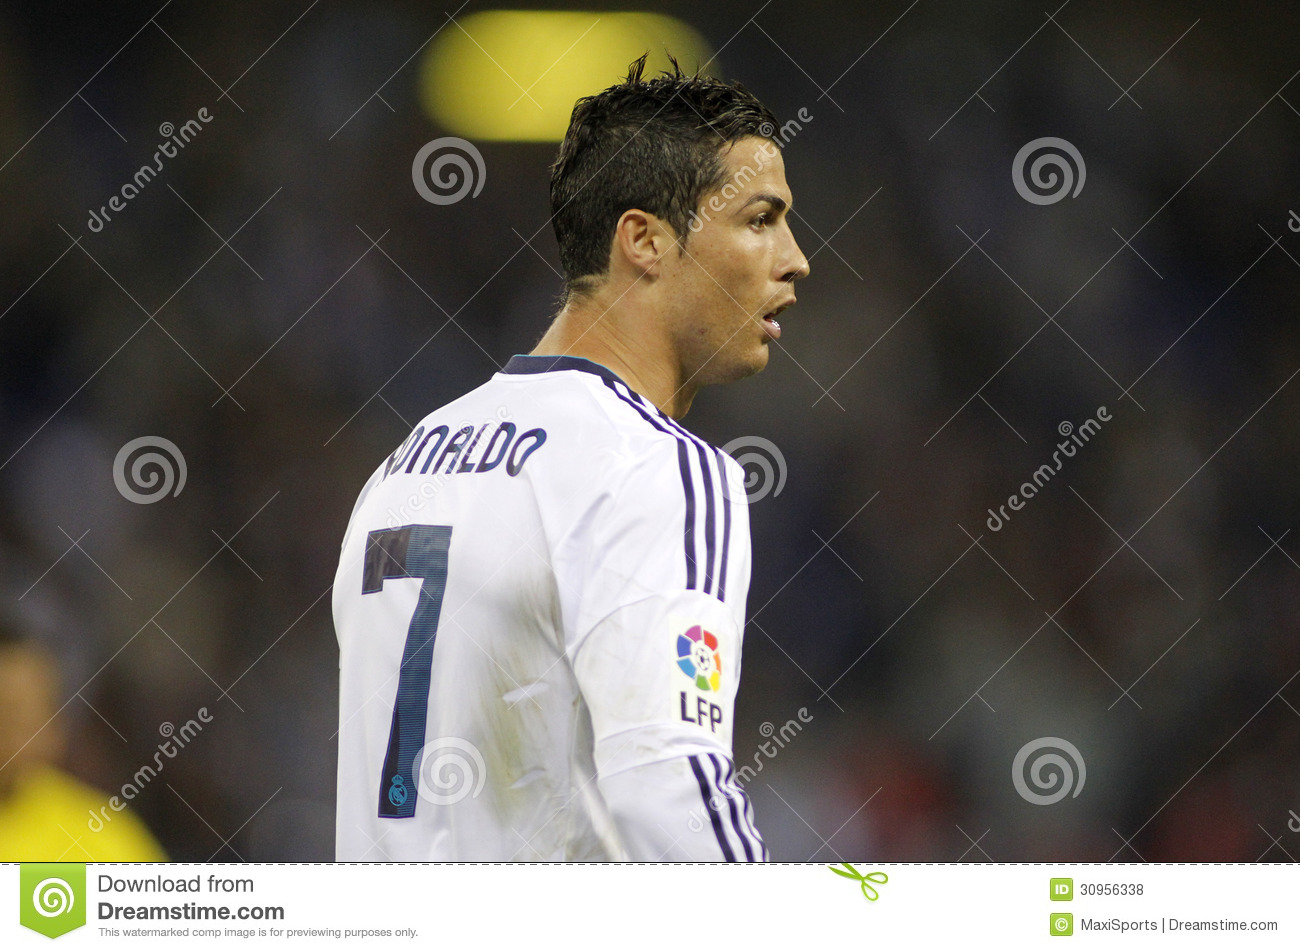 964ca546d Cristiano Ronaldo of Real Madrid during the Spanish League match between  Espanyol and Real Madrid at the Estadi Cornella on May 11